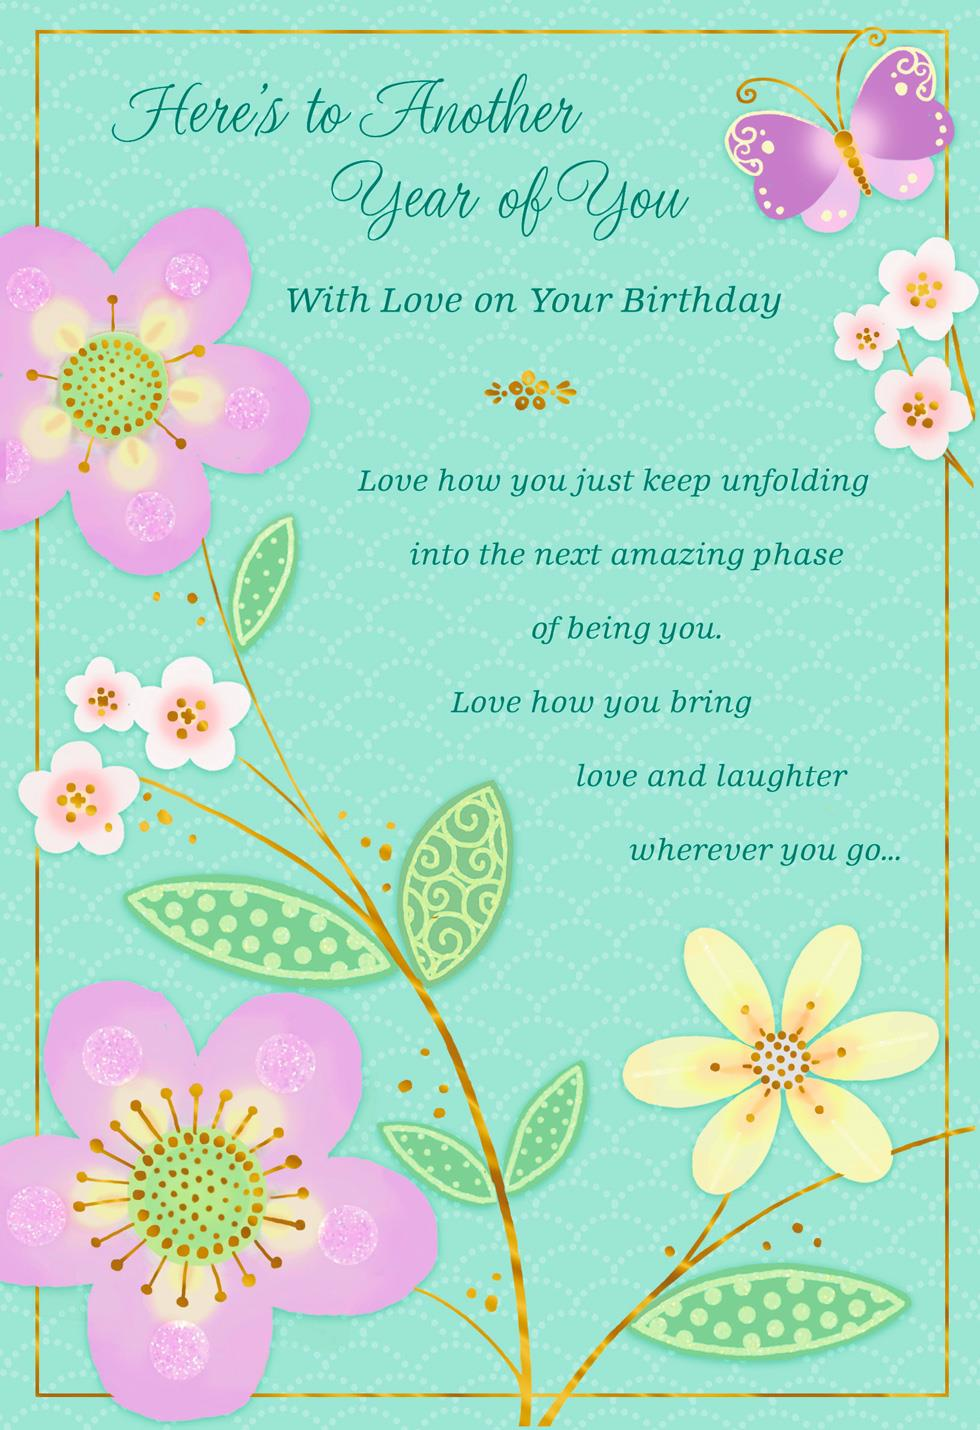 Another Year Of You Pink Flowers Birthday Card Greeting Cards